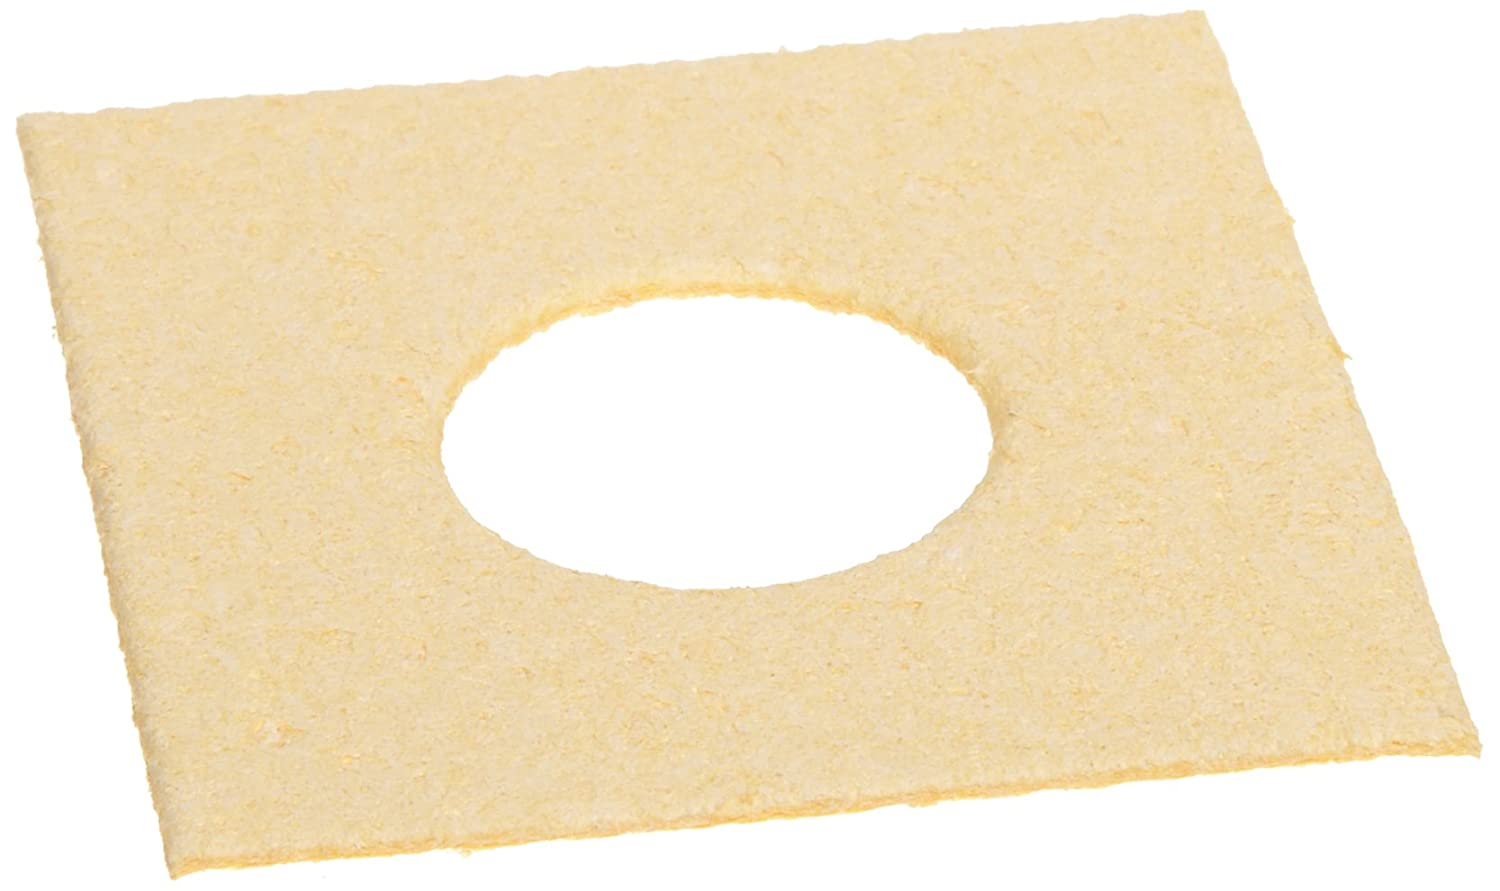 Pack of 6 Assembly Tech International American Beauty 481S Replacement Sponge for Well Type Tip Cleaner and Industrial Station